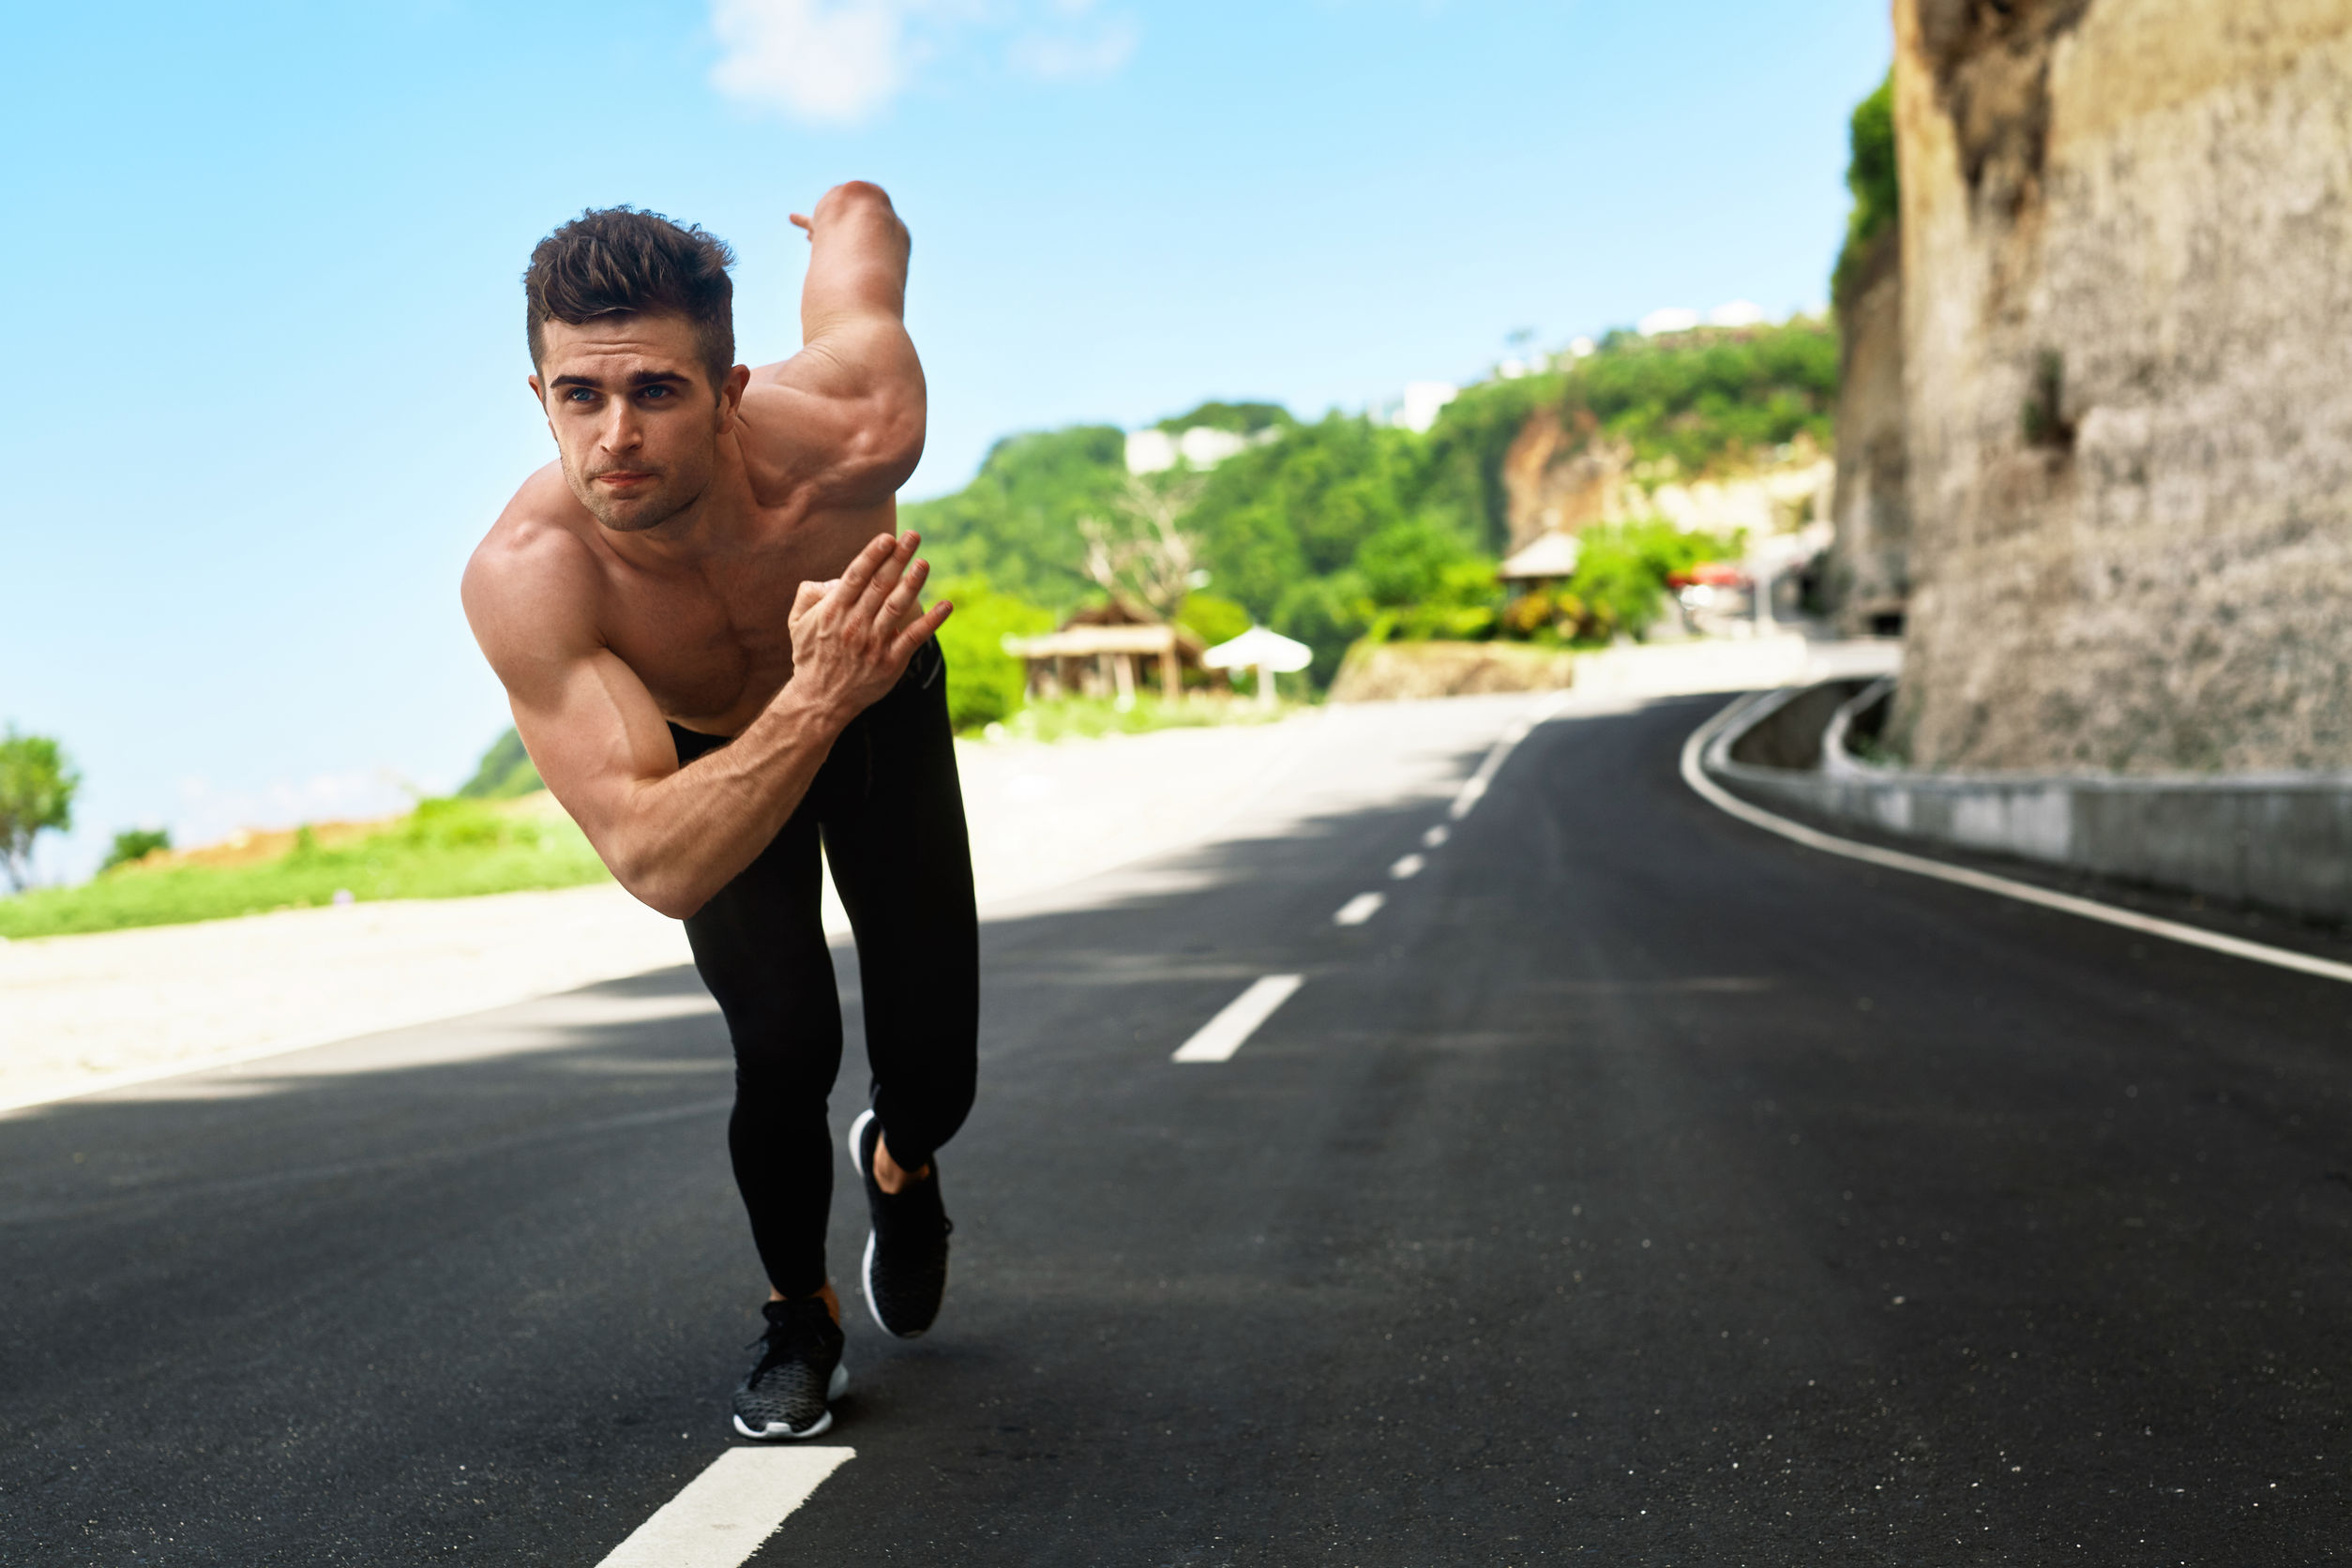 57159660 - athletics. athletic man with fit muscular body in starting position for running on road. handsome runner ready to start sprint race. fitness model training outdoors in summer. sports workout concept